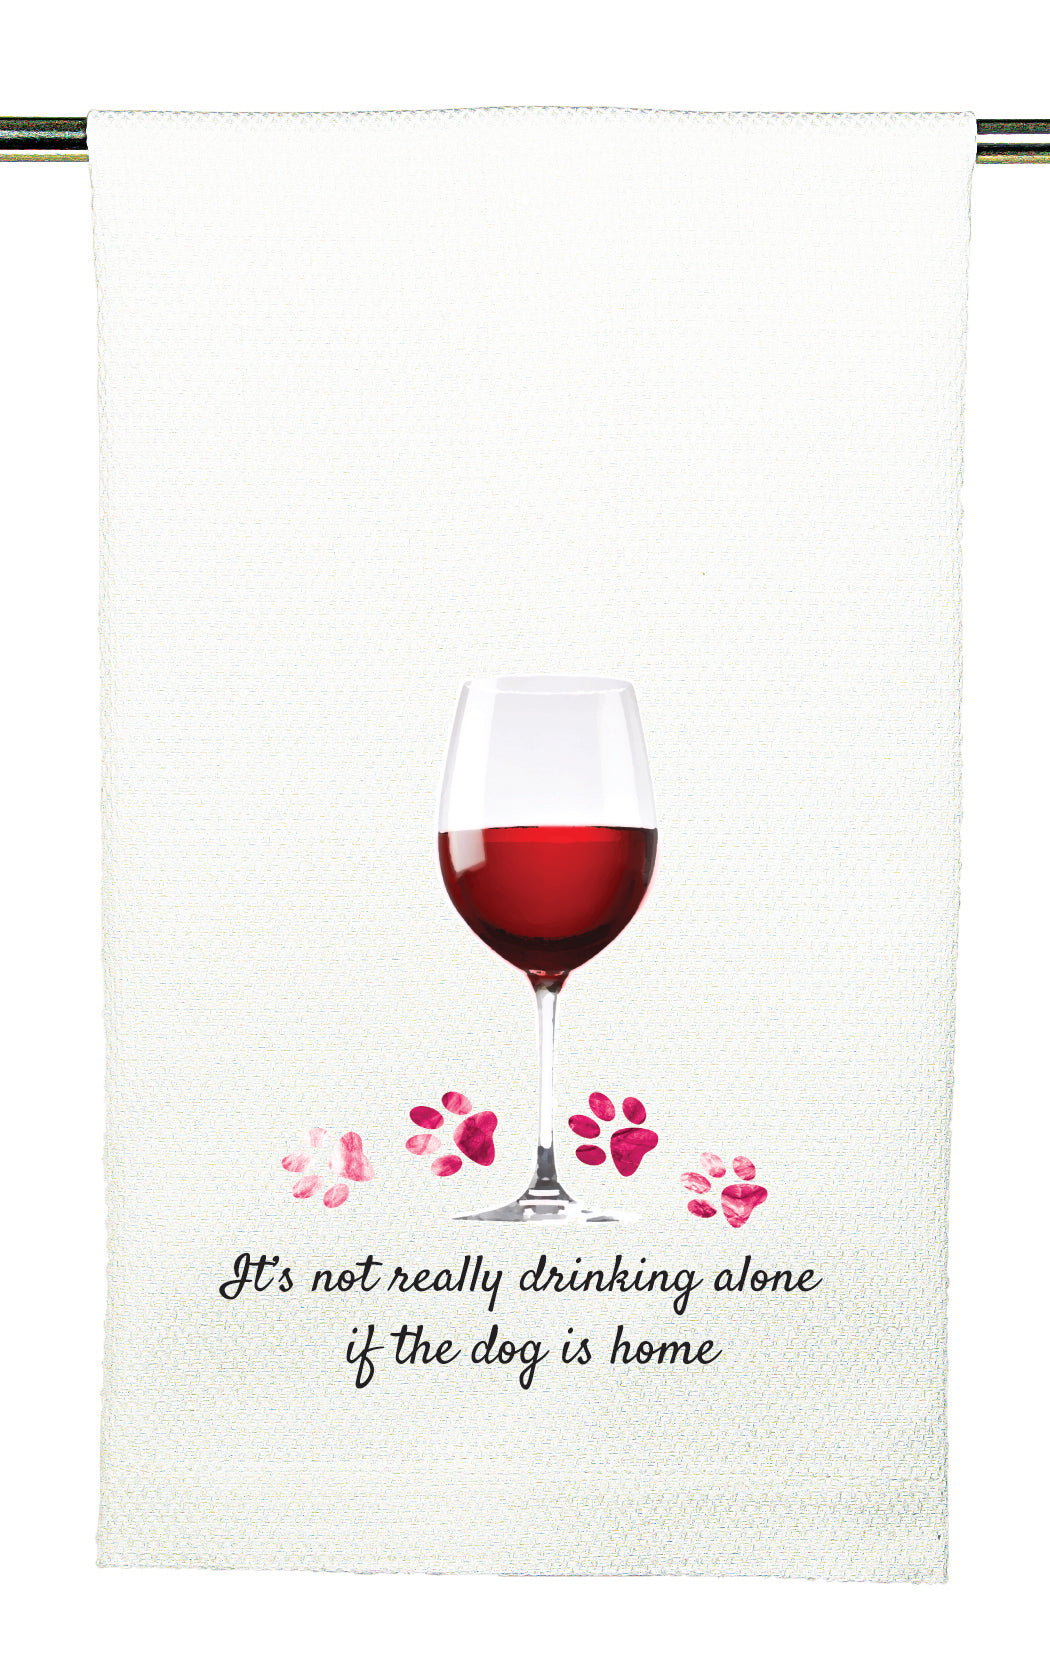 Huck Towel by Mariasch Studios: It's Not Really Drinking Alone